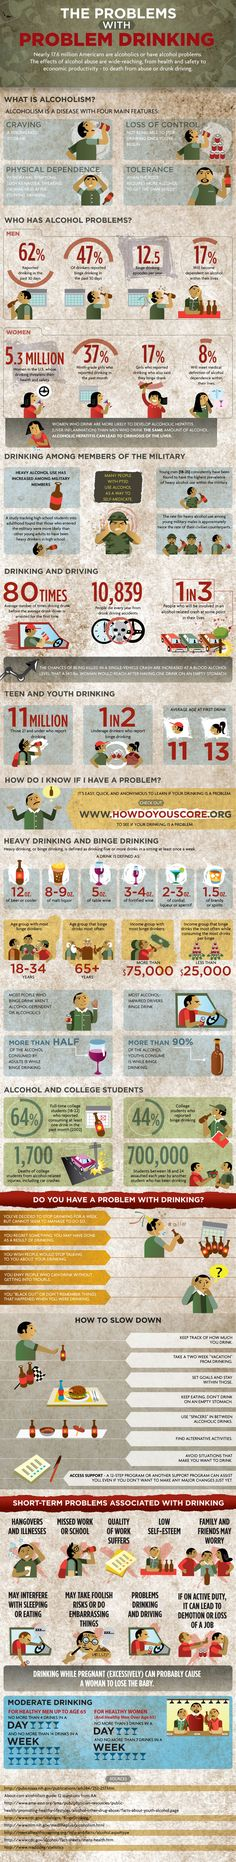 Am I an Alcoholic? Alcohol Abuse Facts from #Infographics Central. Older adults age 65+ binge drink most often.  #seniors #aging #mentalhealth #elderly